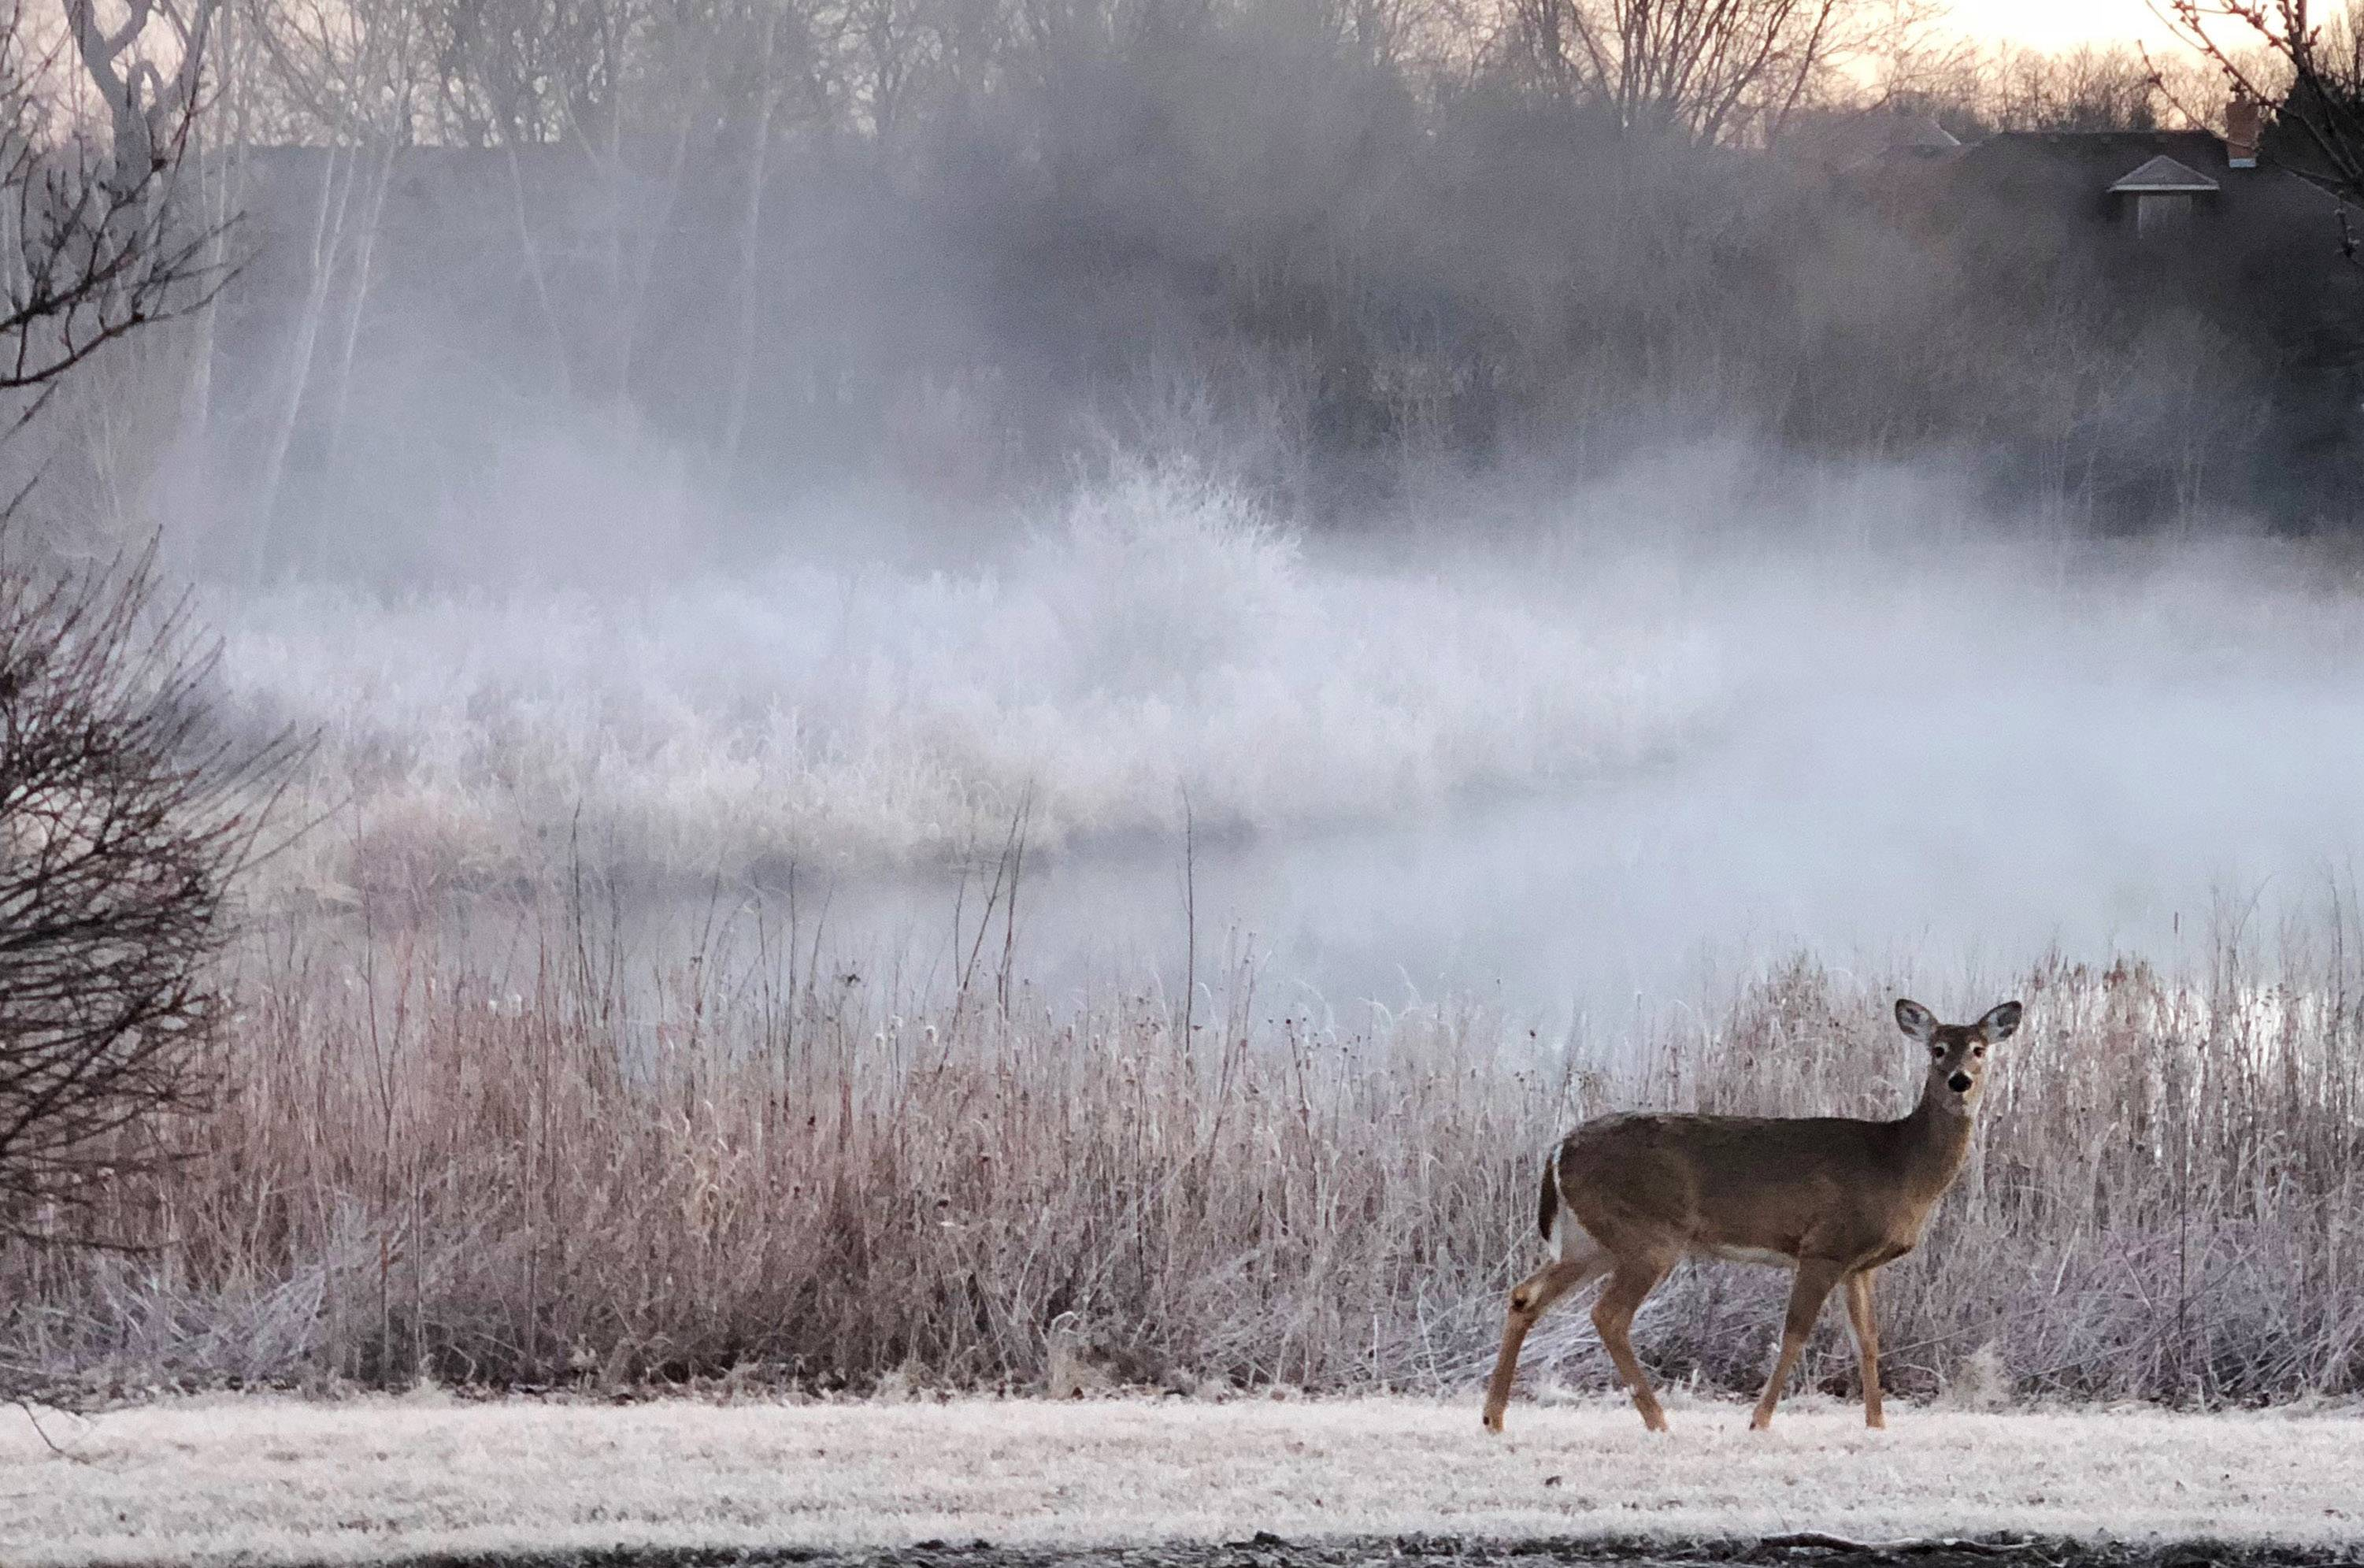 A deer walks past a pond as the mist rises on the morning of Mar 23 in Hoffman Estates